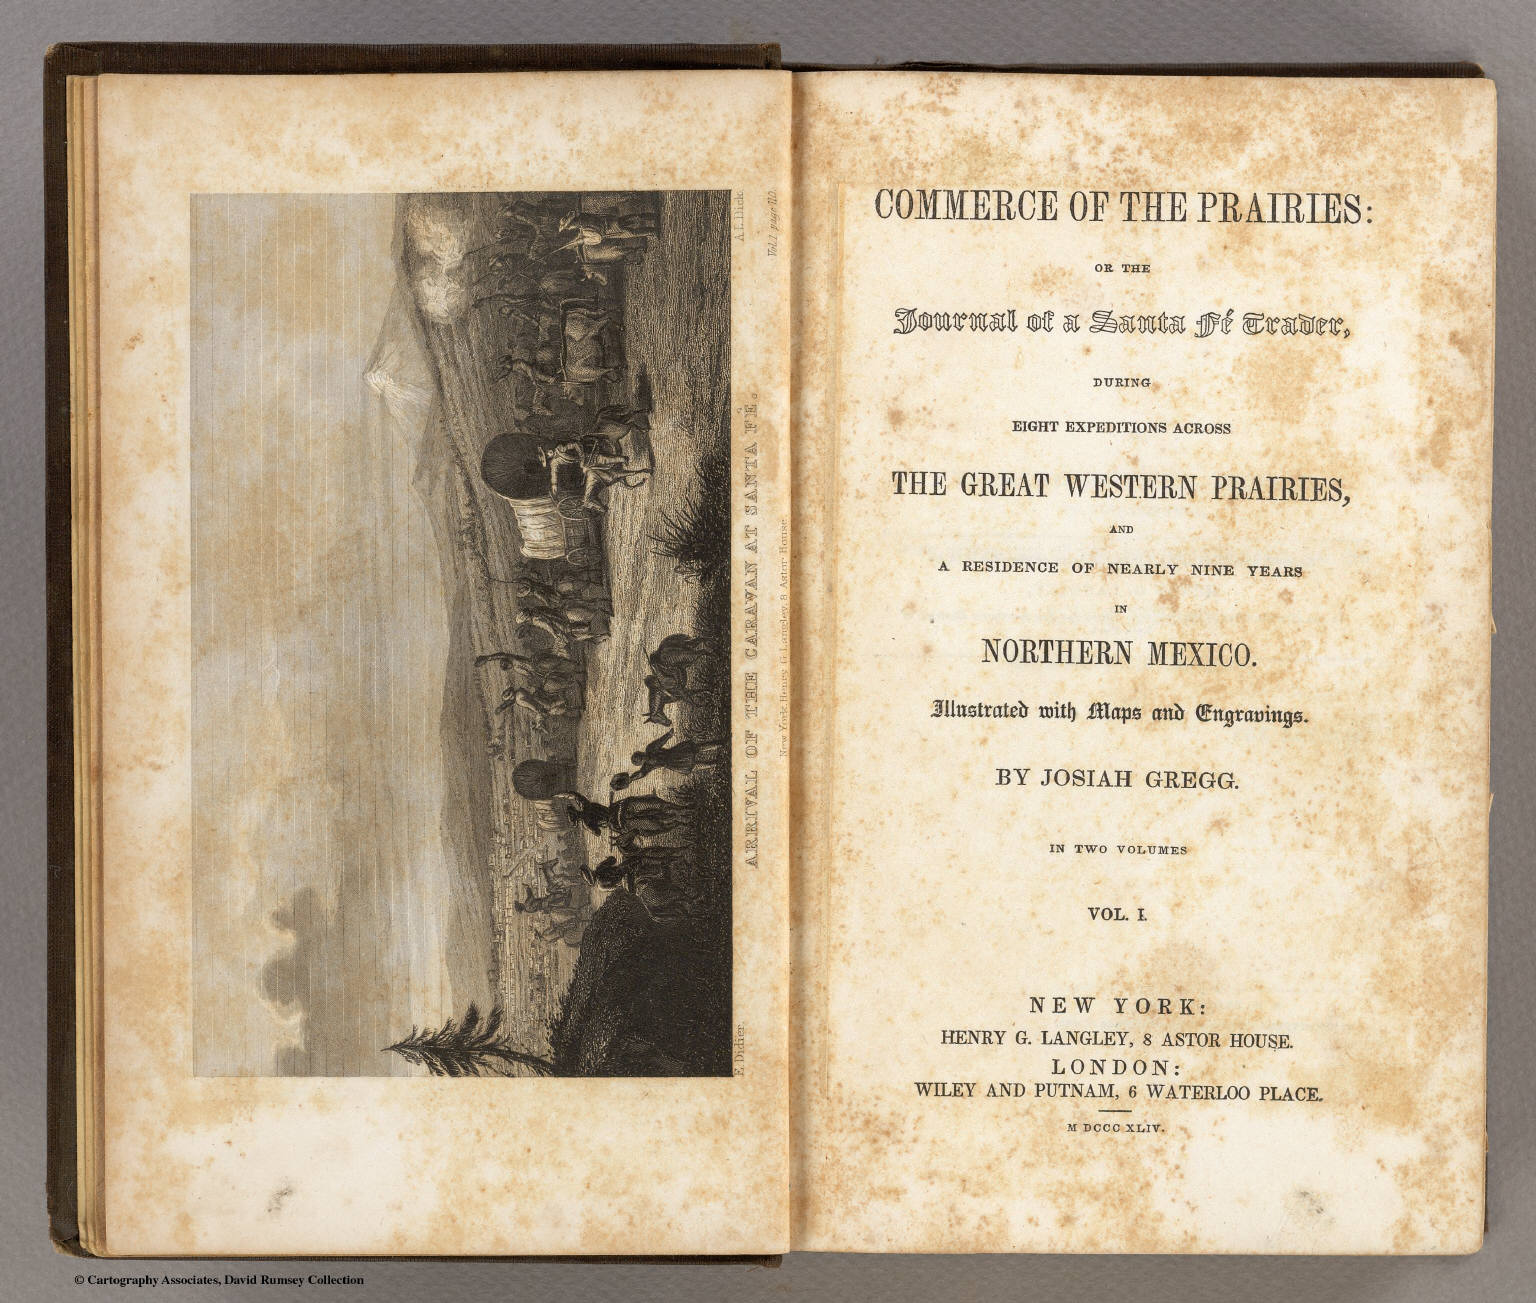 The frontispiece and title page of ''Commerce of the Prairies''